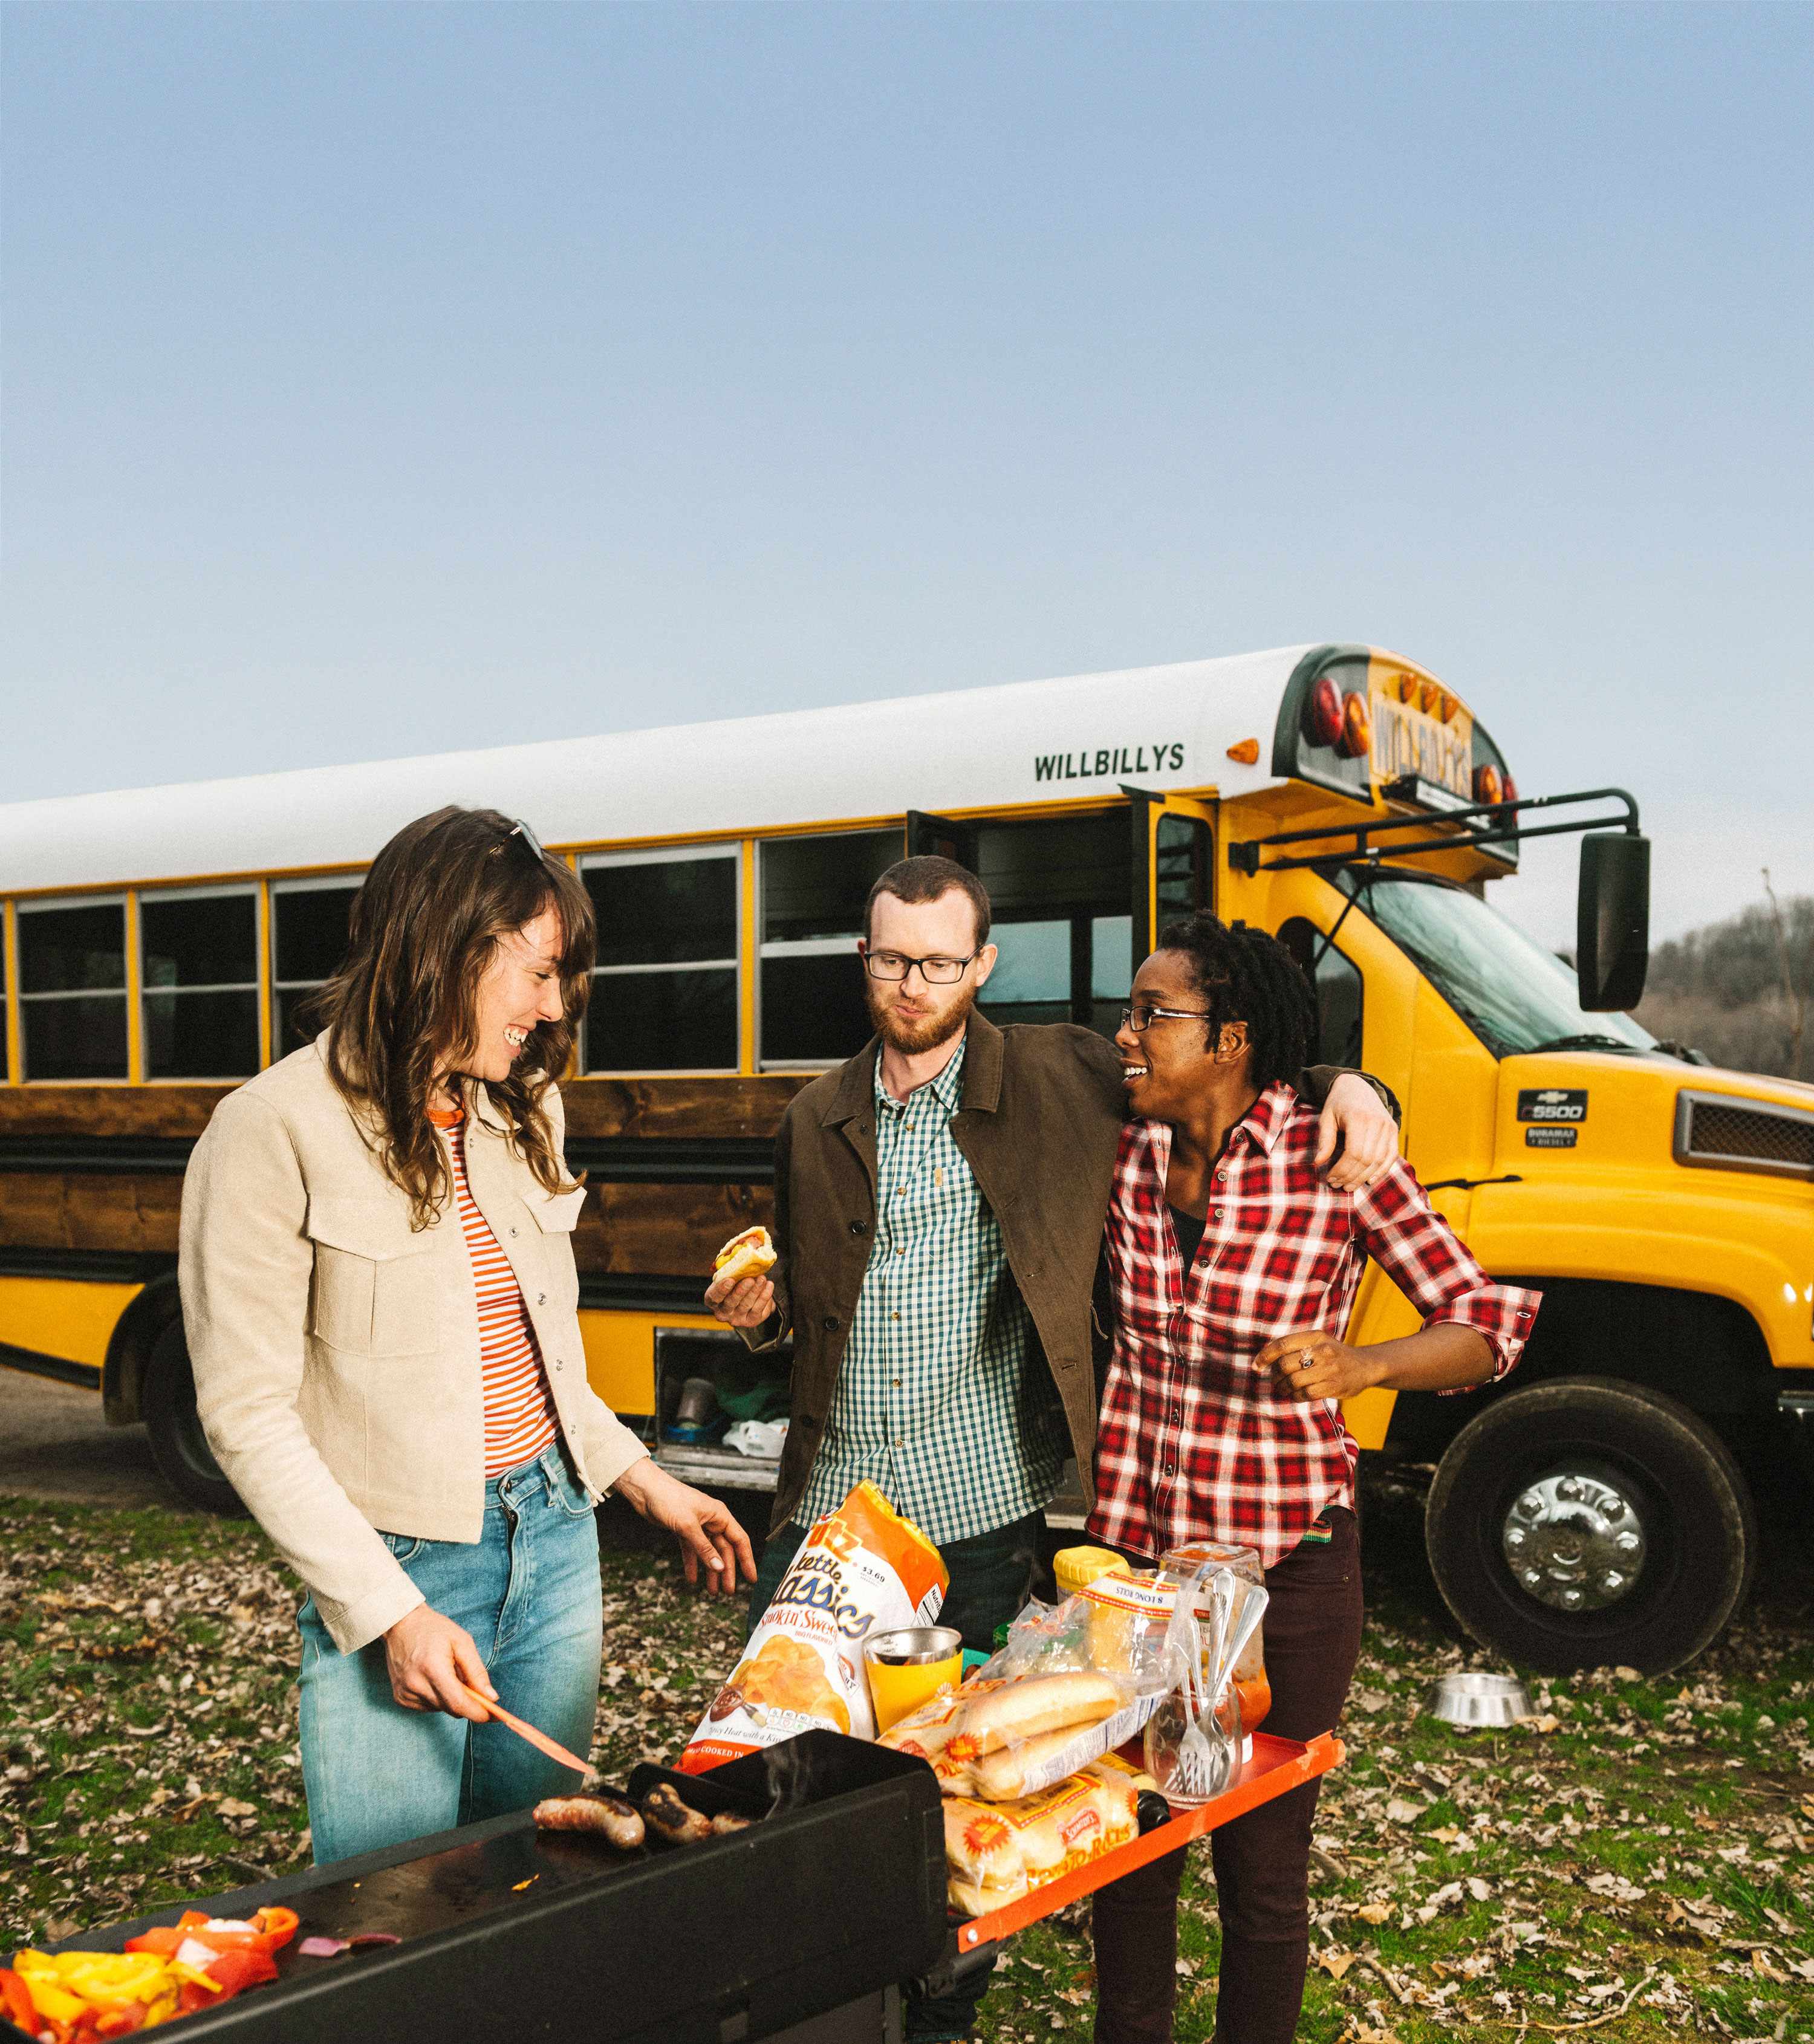 Stem School Bus Org: I Turned A School Bus Into An RV And Traveled The Country